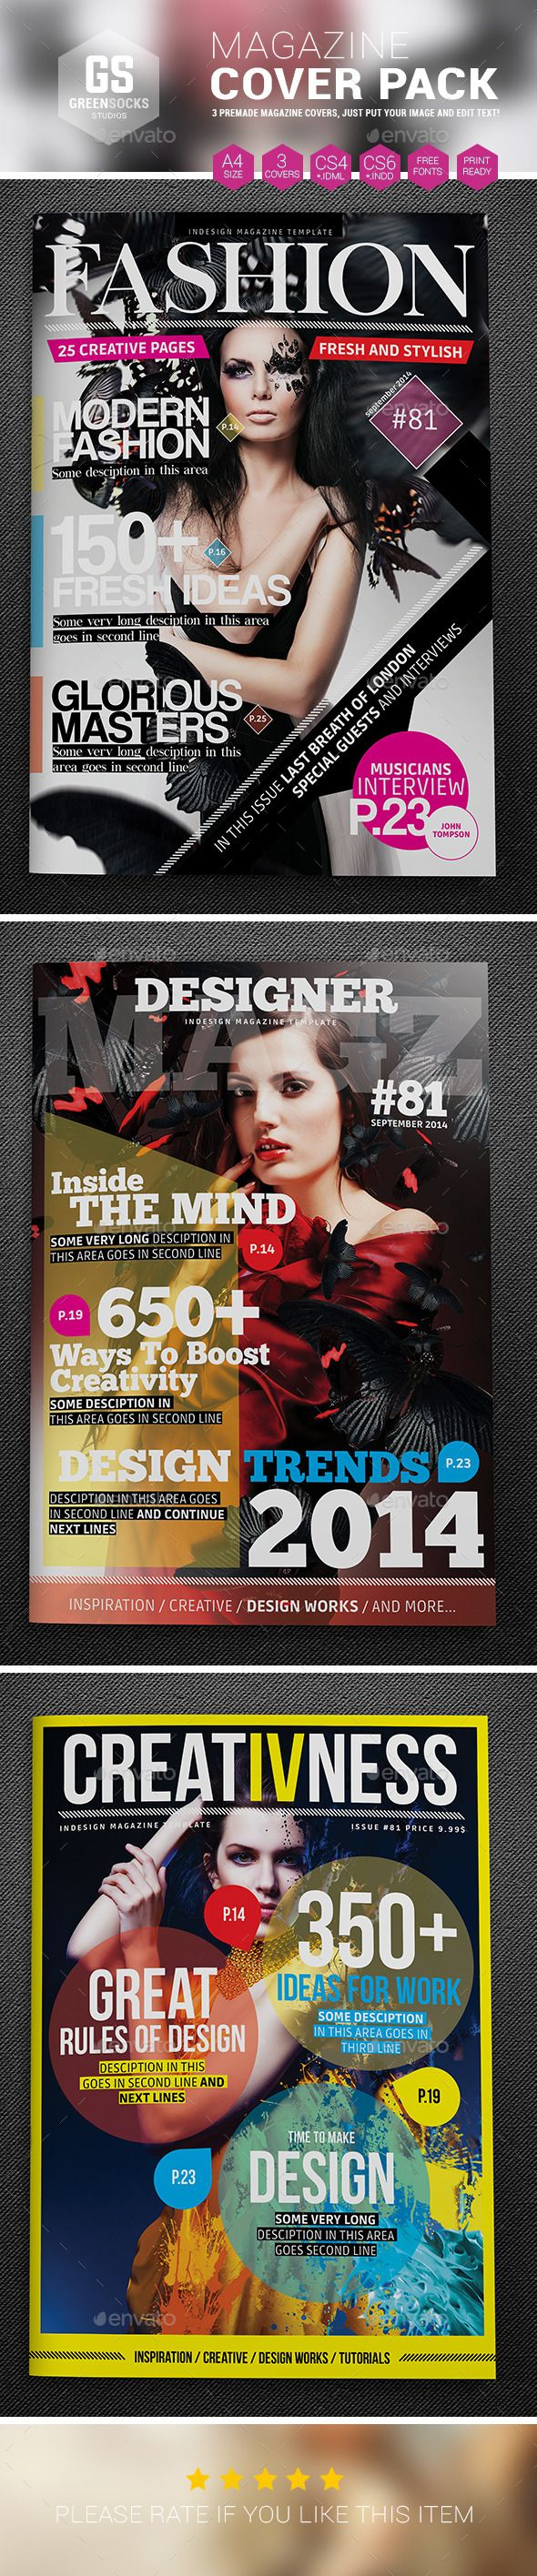 Magazine Cover Templates | Magazine cover template, Cover template ...